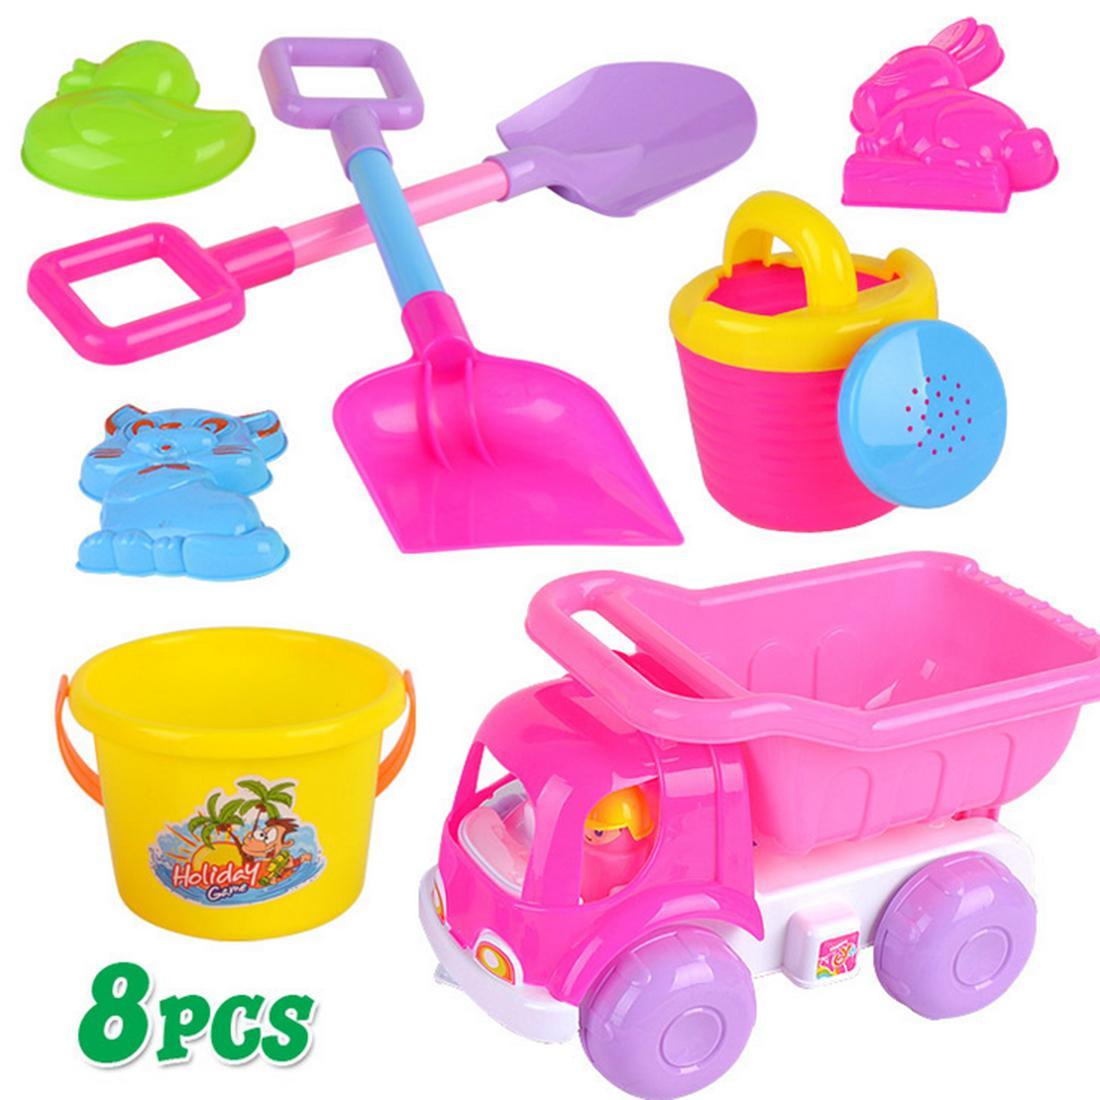 Color Random Toys & Hobbies Creative 5pcs Beach Sand Toy Set Bucket Shovels Watering Can Children Safety Soft Plastic Toys